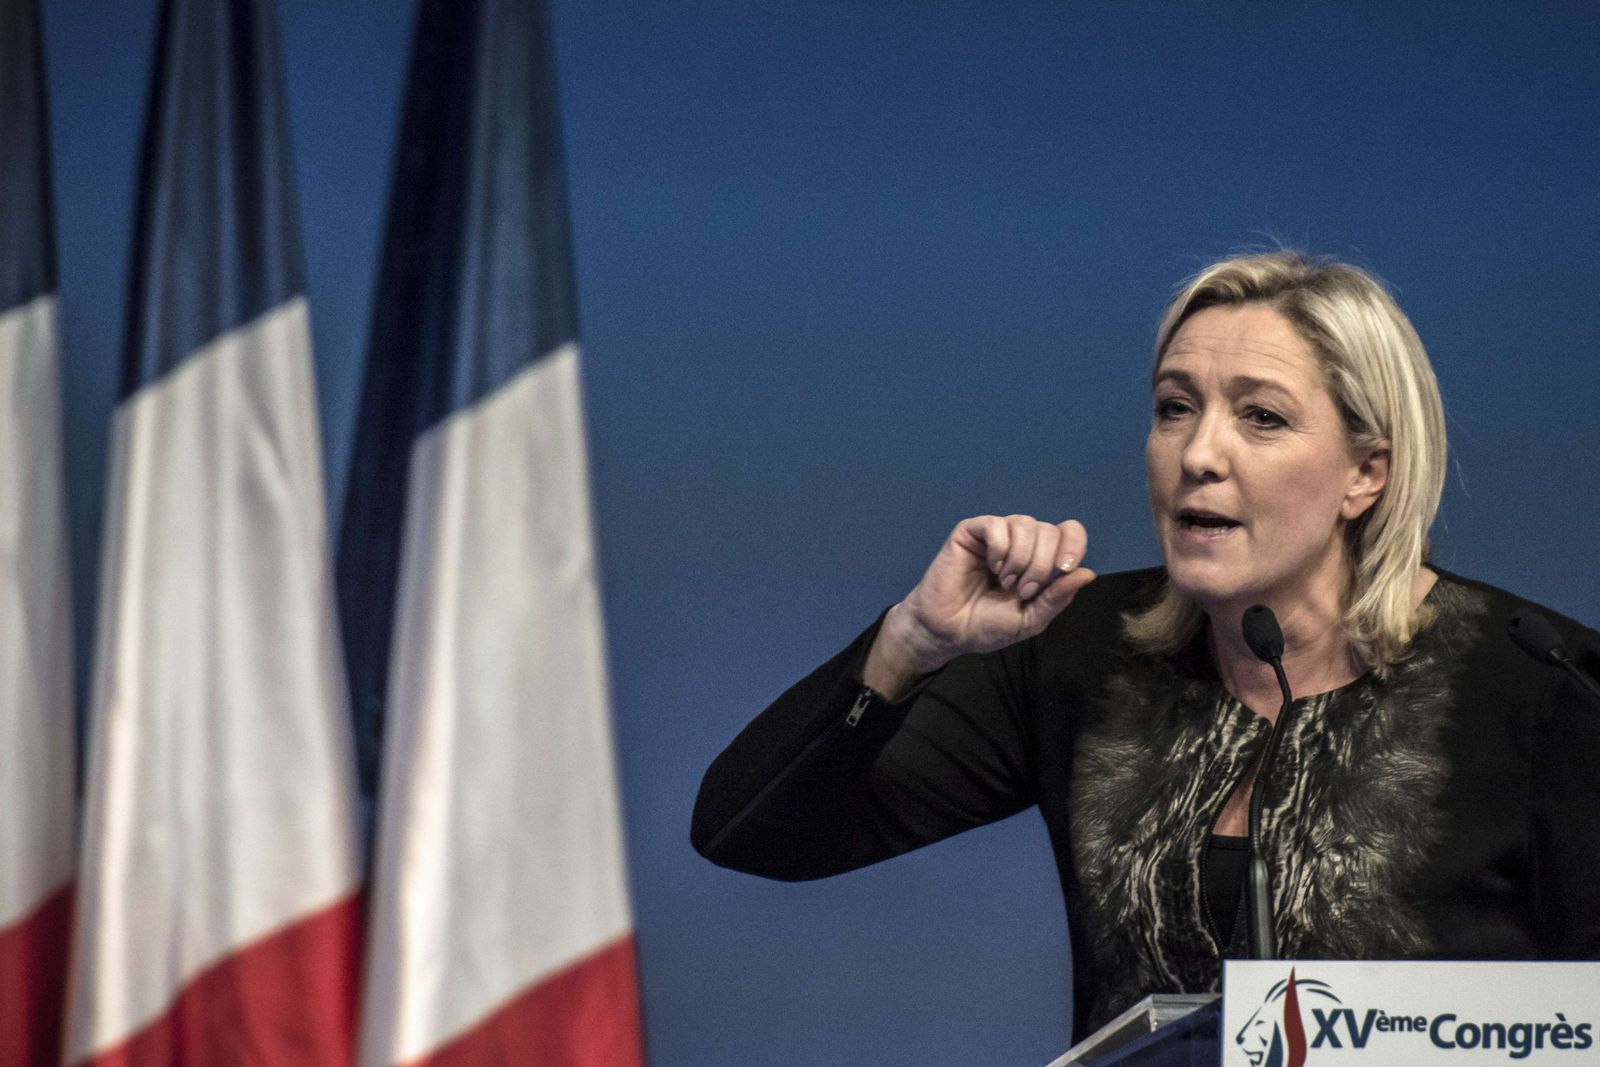 FRANCE-POLITICS-PARTY-FN